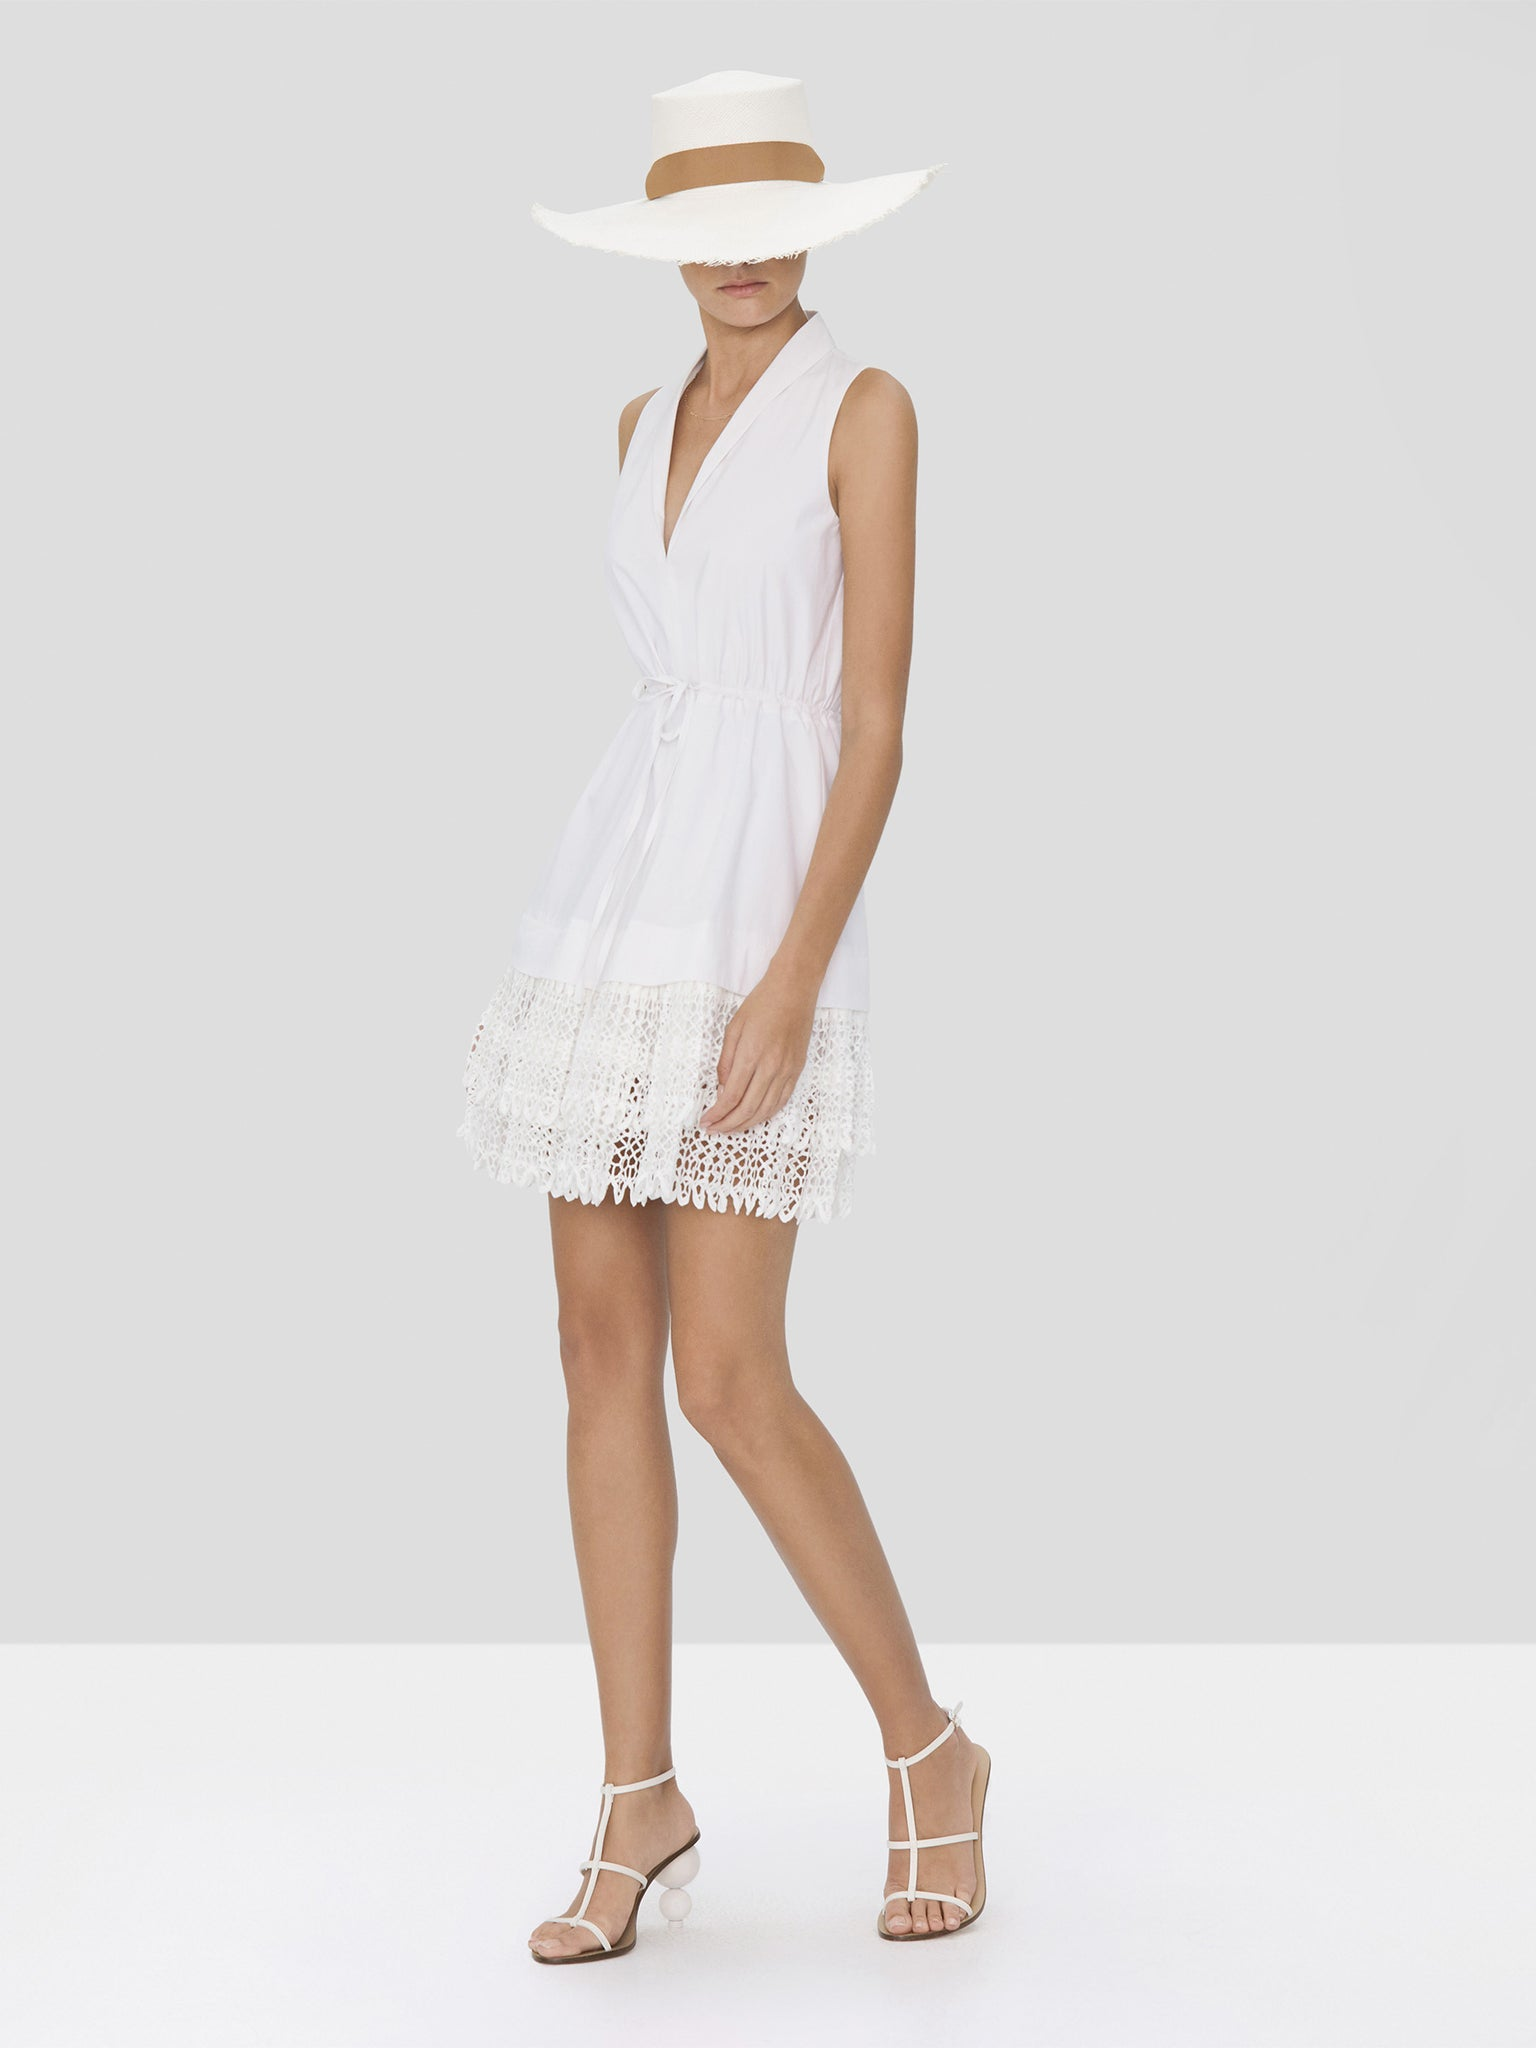 Alexis Clauden Dress in White from Spring Summer 2020 Collection